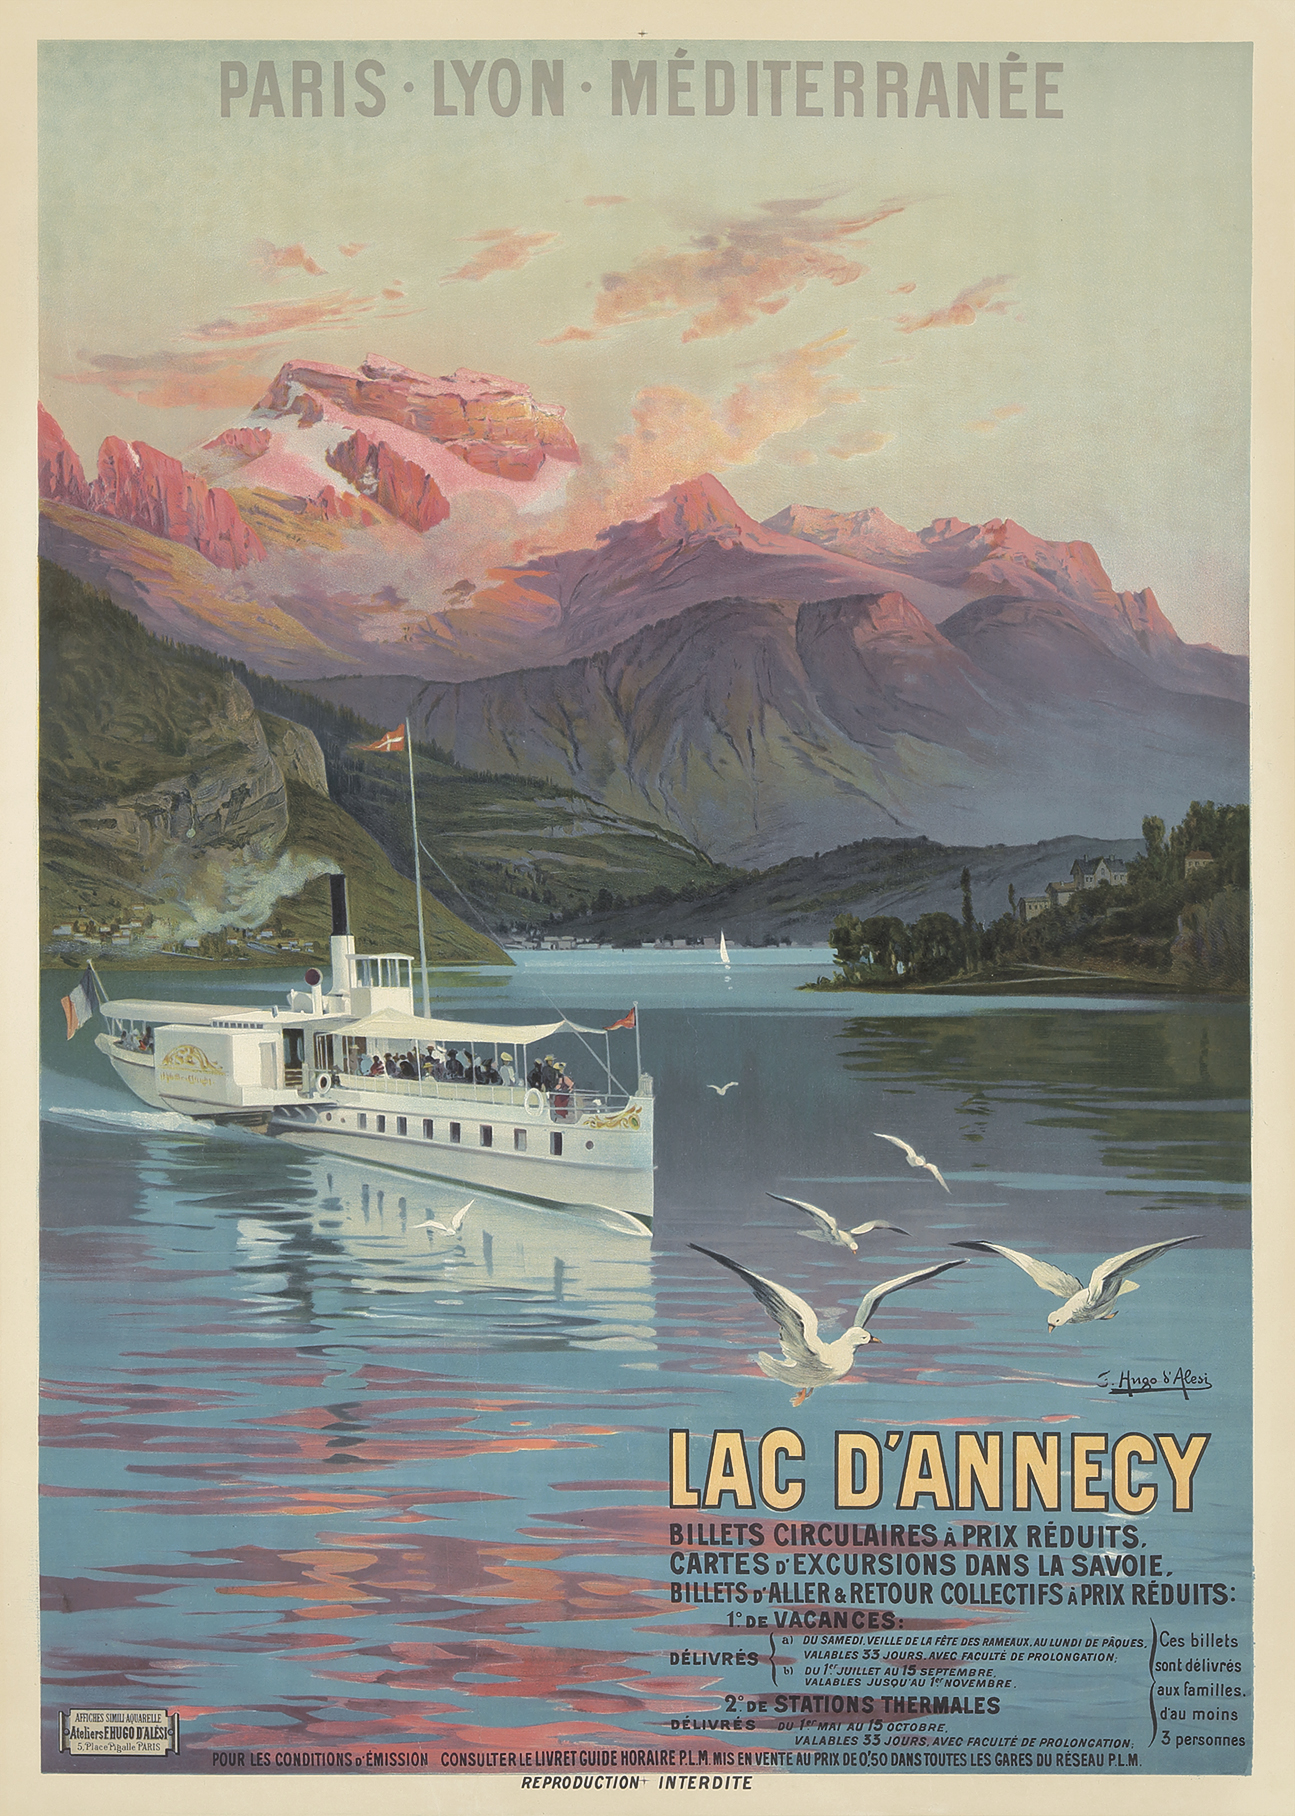 25 Fantastically Retro And Vintage Home Decorations: Vintage Art Deco Travel Posters On Auction February 25, 2018